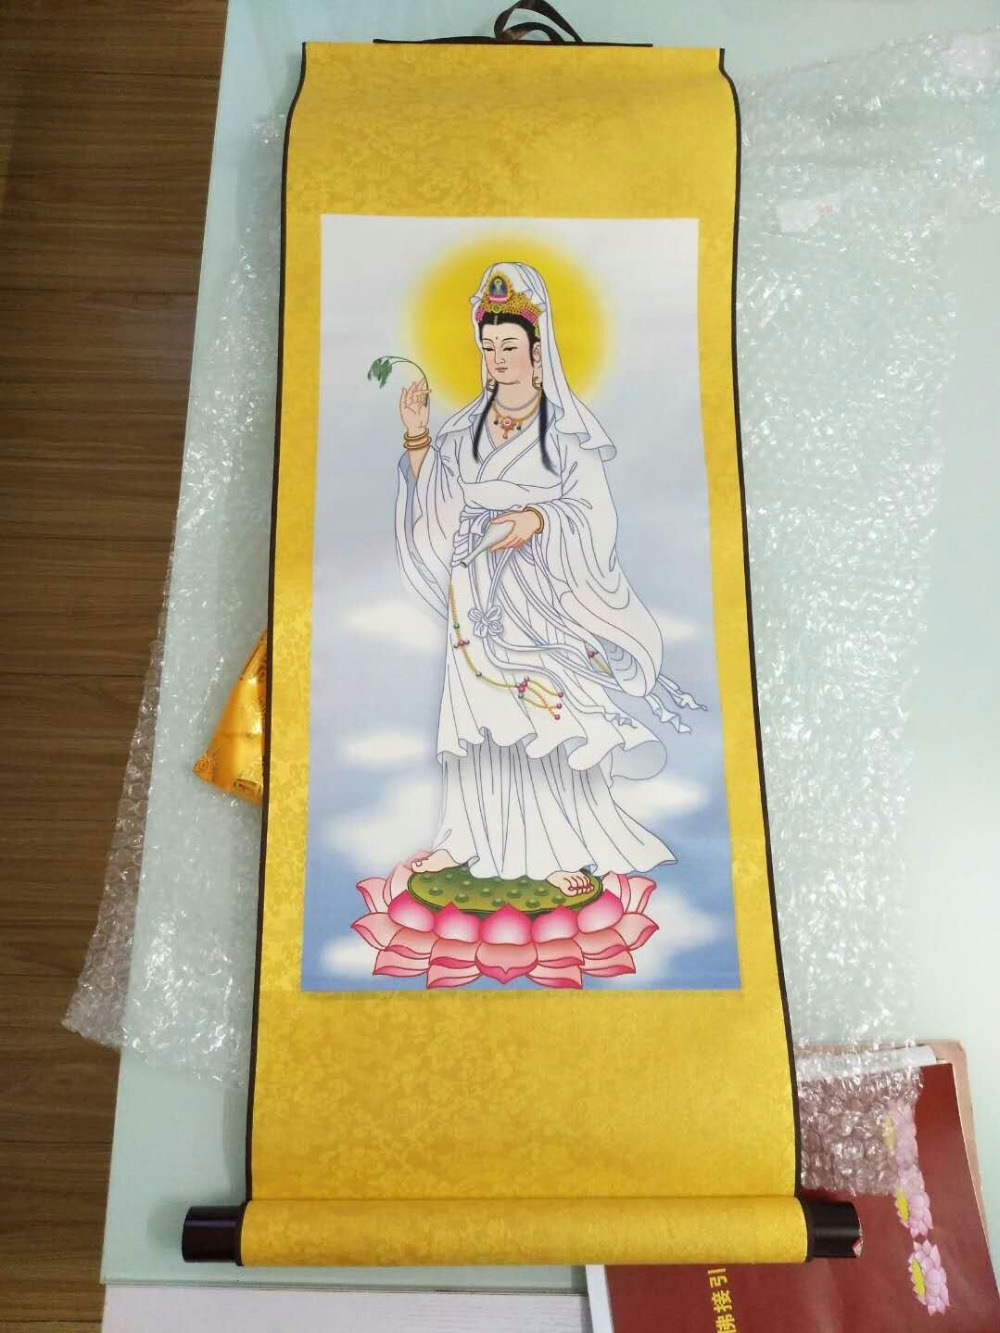 Us 63 48 8 Off Spiritual Protection Bless Family Home Living Room Altar Wall Decorative Lotus Guanyin Buddha Feng Shui Chinese Silk Painting In